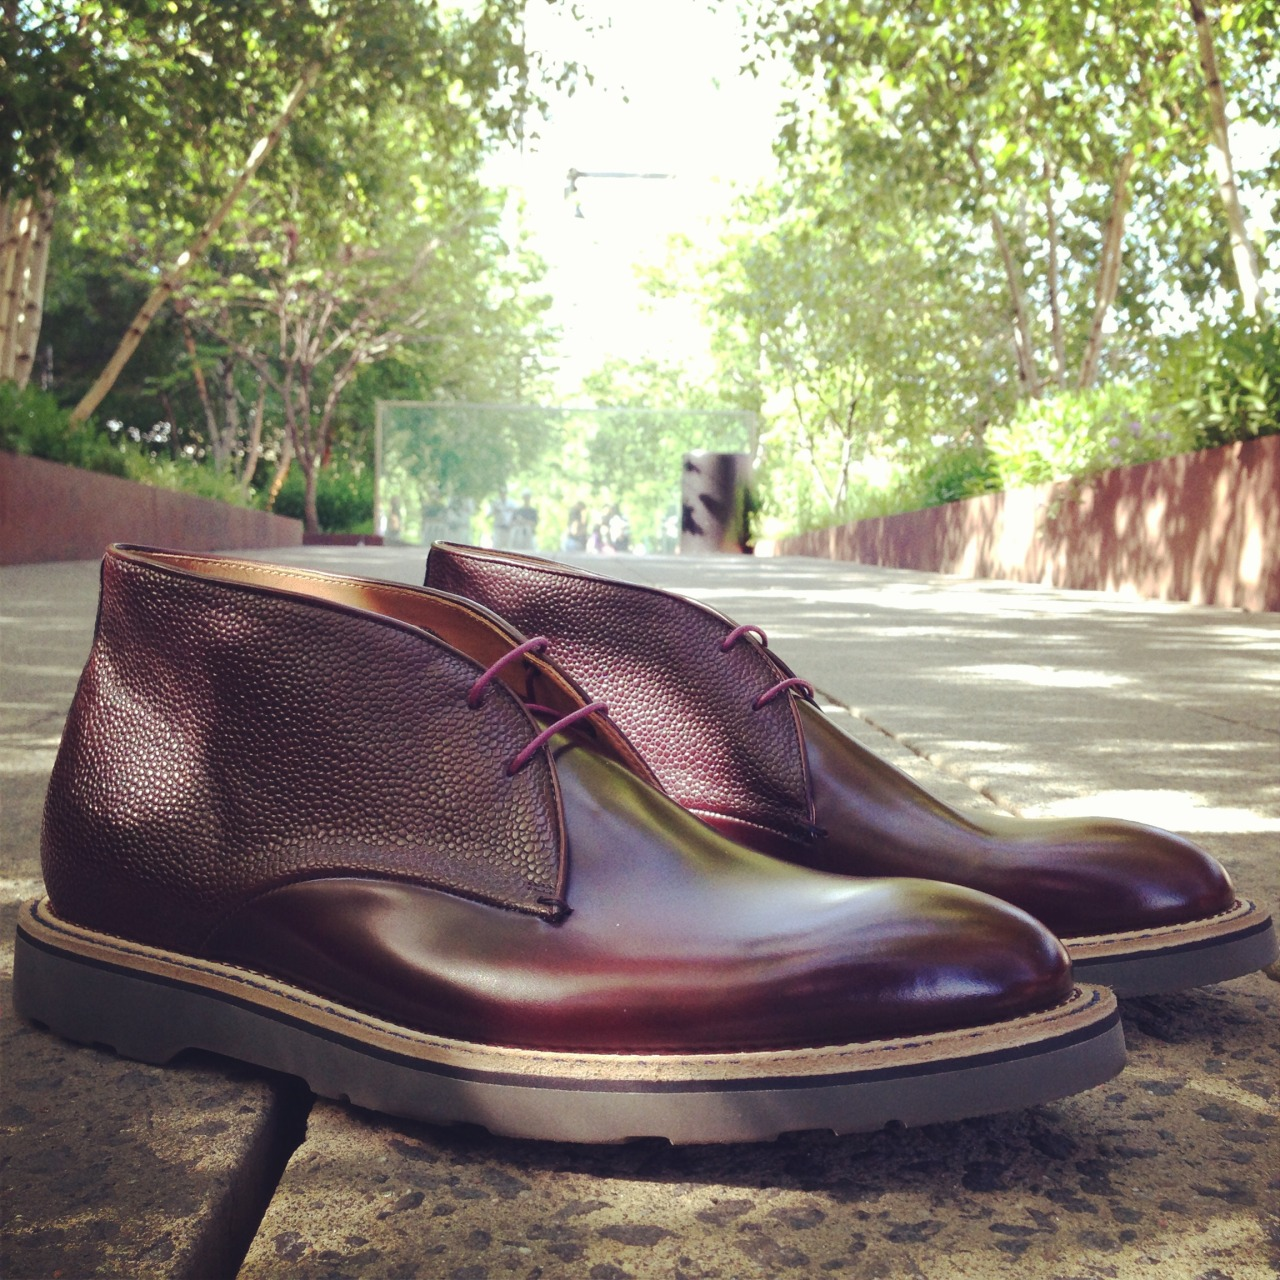 Shoegazing on the High Line  The Paul Smith textured leather chukka